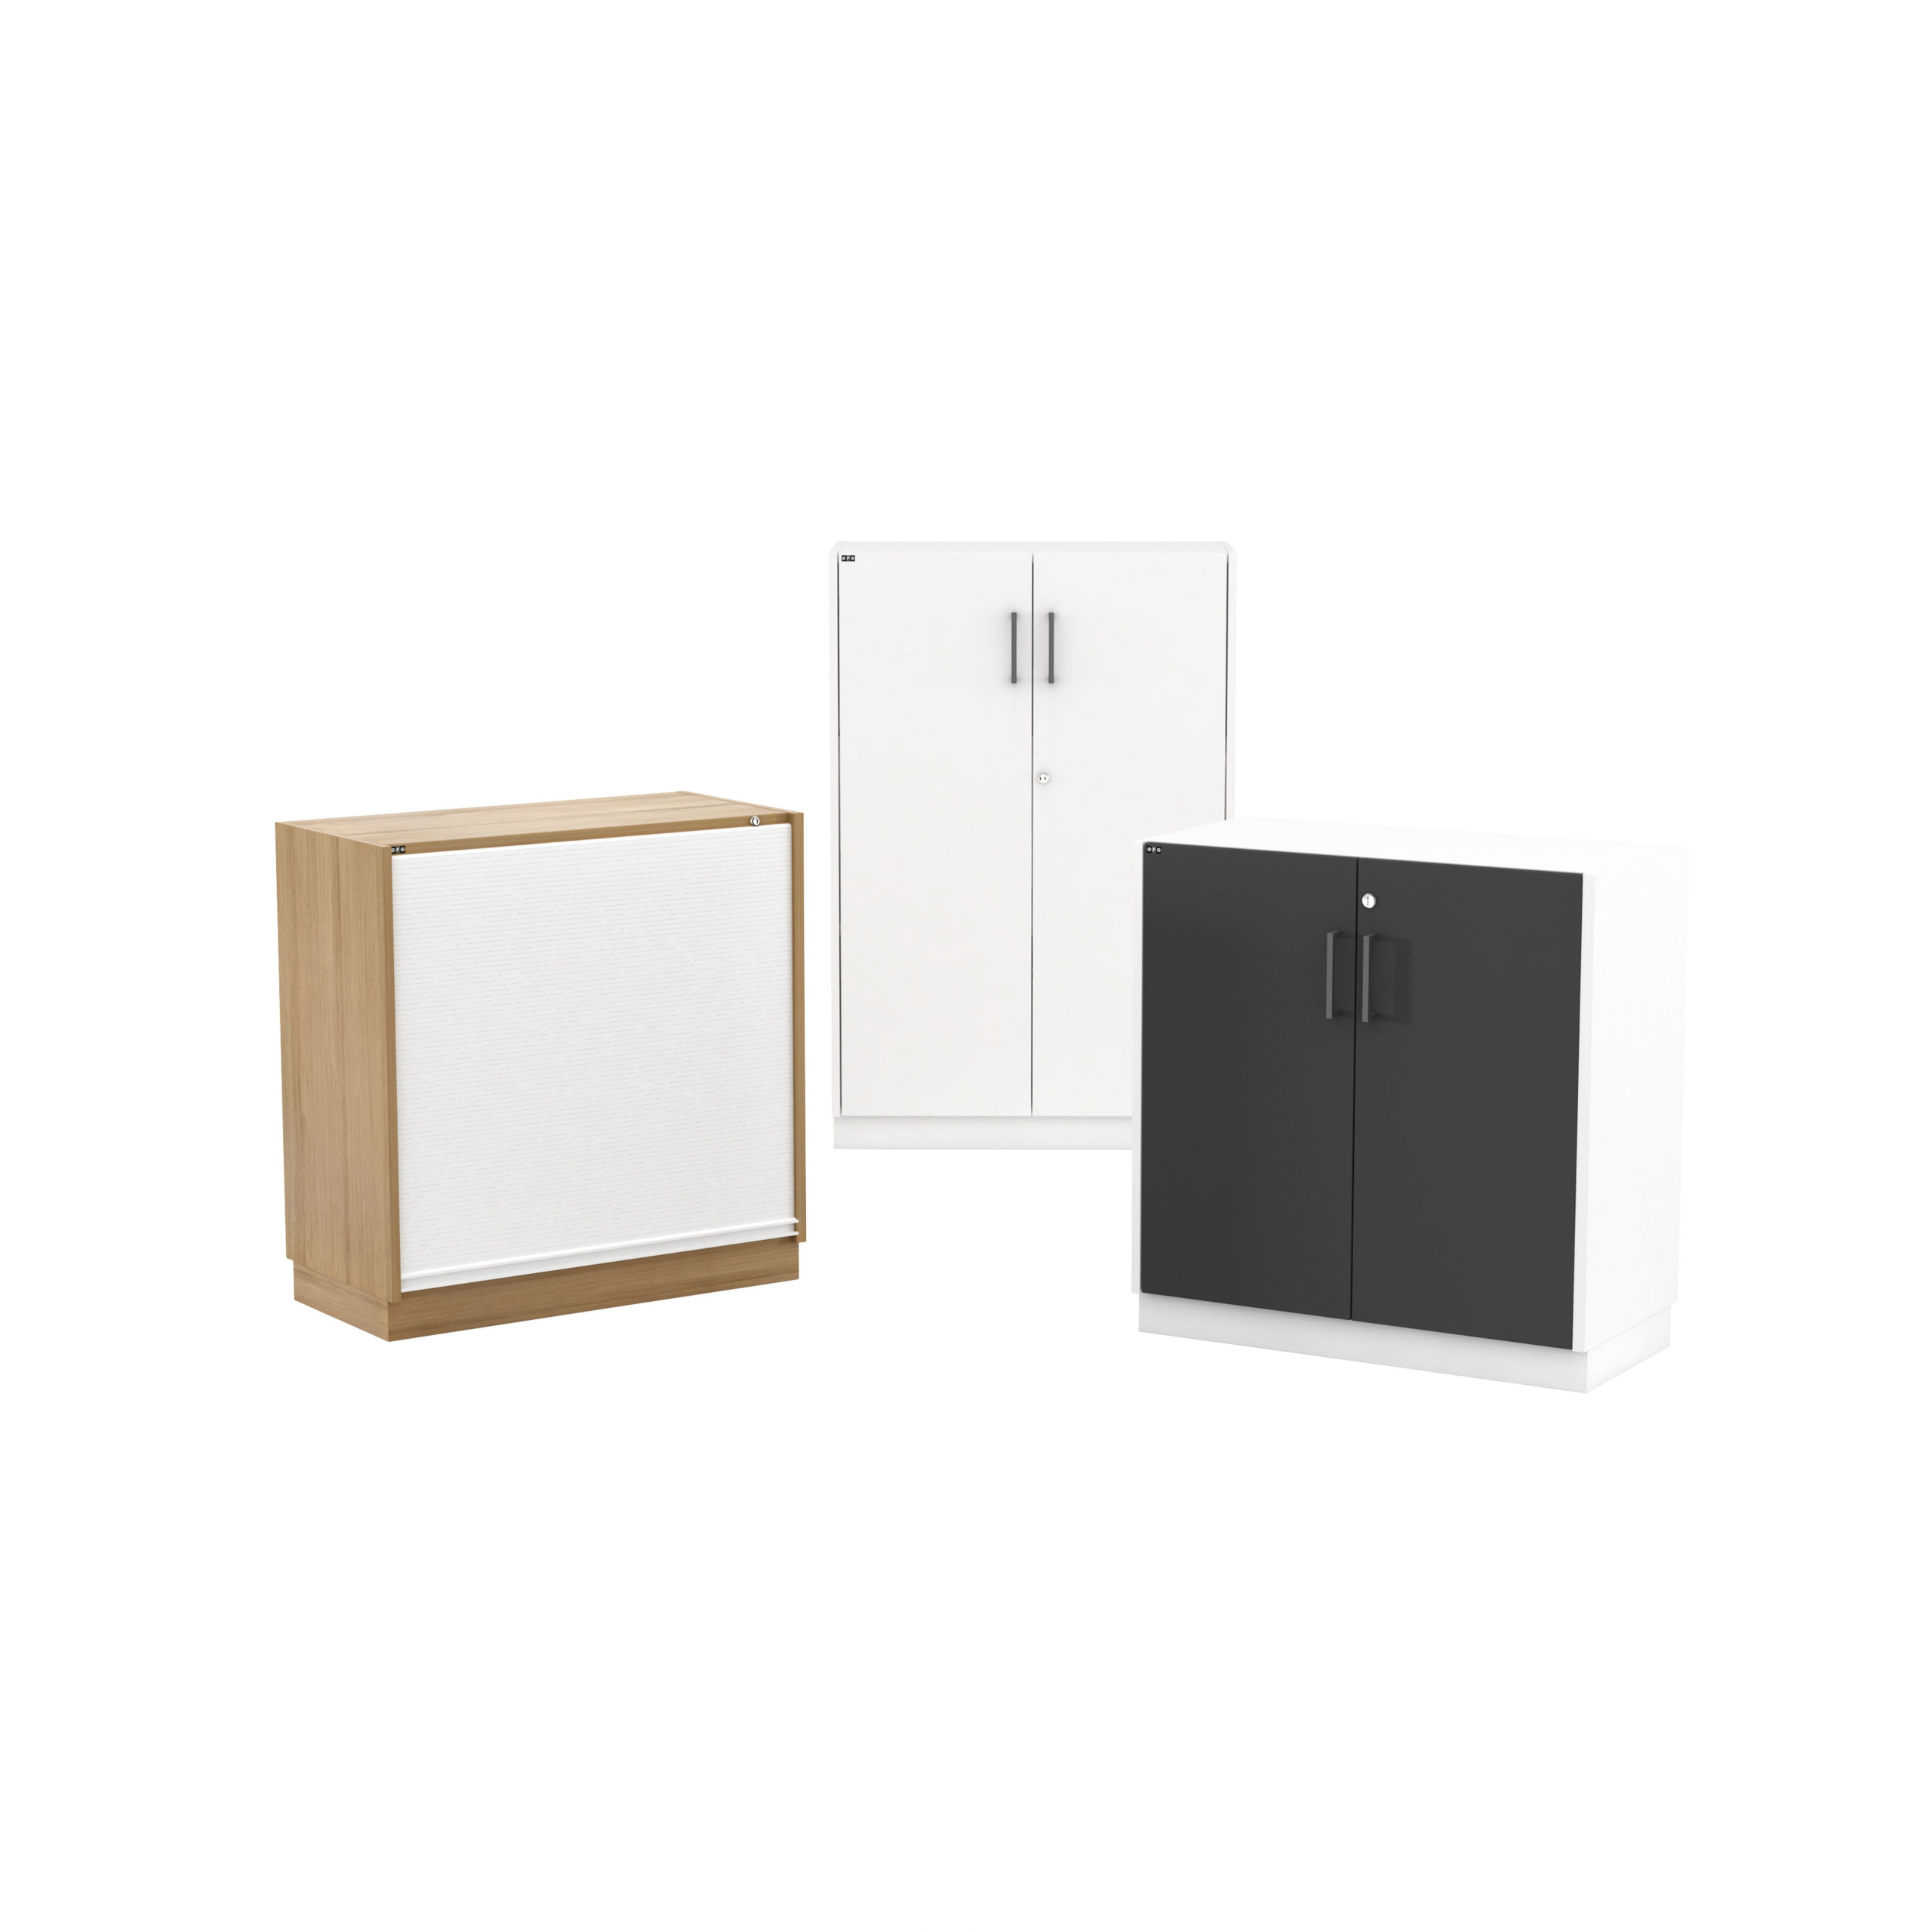 Storage Storage with shelves, cupboards and drawers product image 1